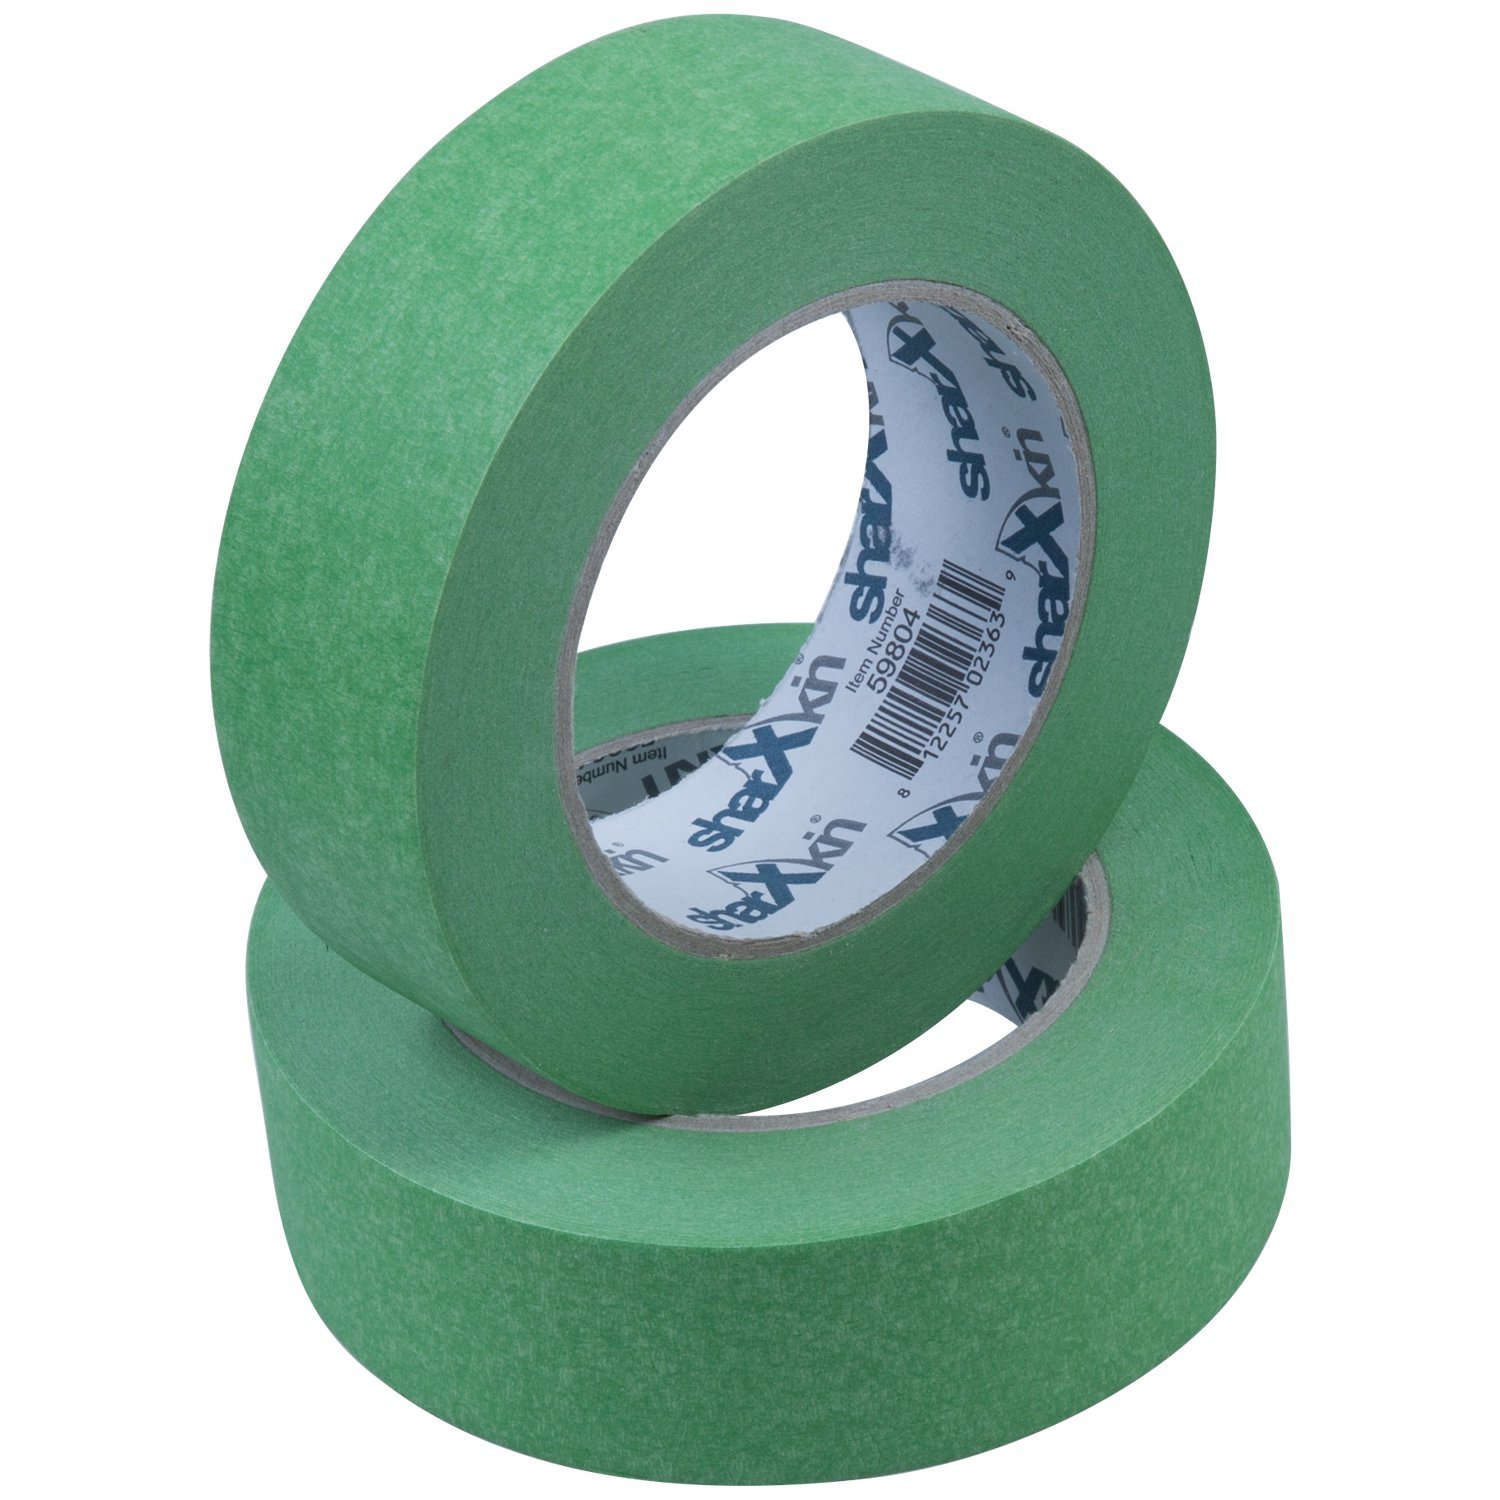 """24-Units per Box Sharxkin Masking Tape in Green for Automotive Car and Home Painting Projects Leaves No Residue on Steel Glass Plastic and Rubber with Multiple Sizes Available (1 ½"""" x 60 Yards)"""